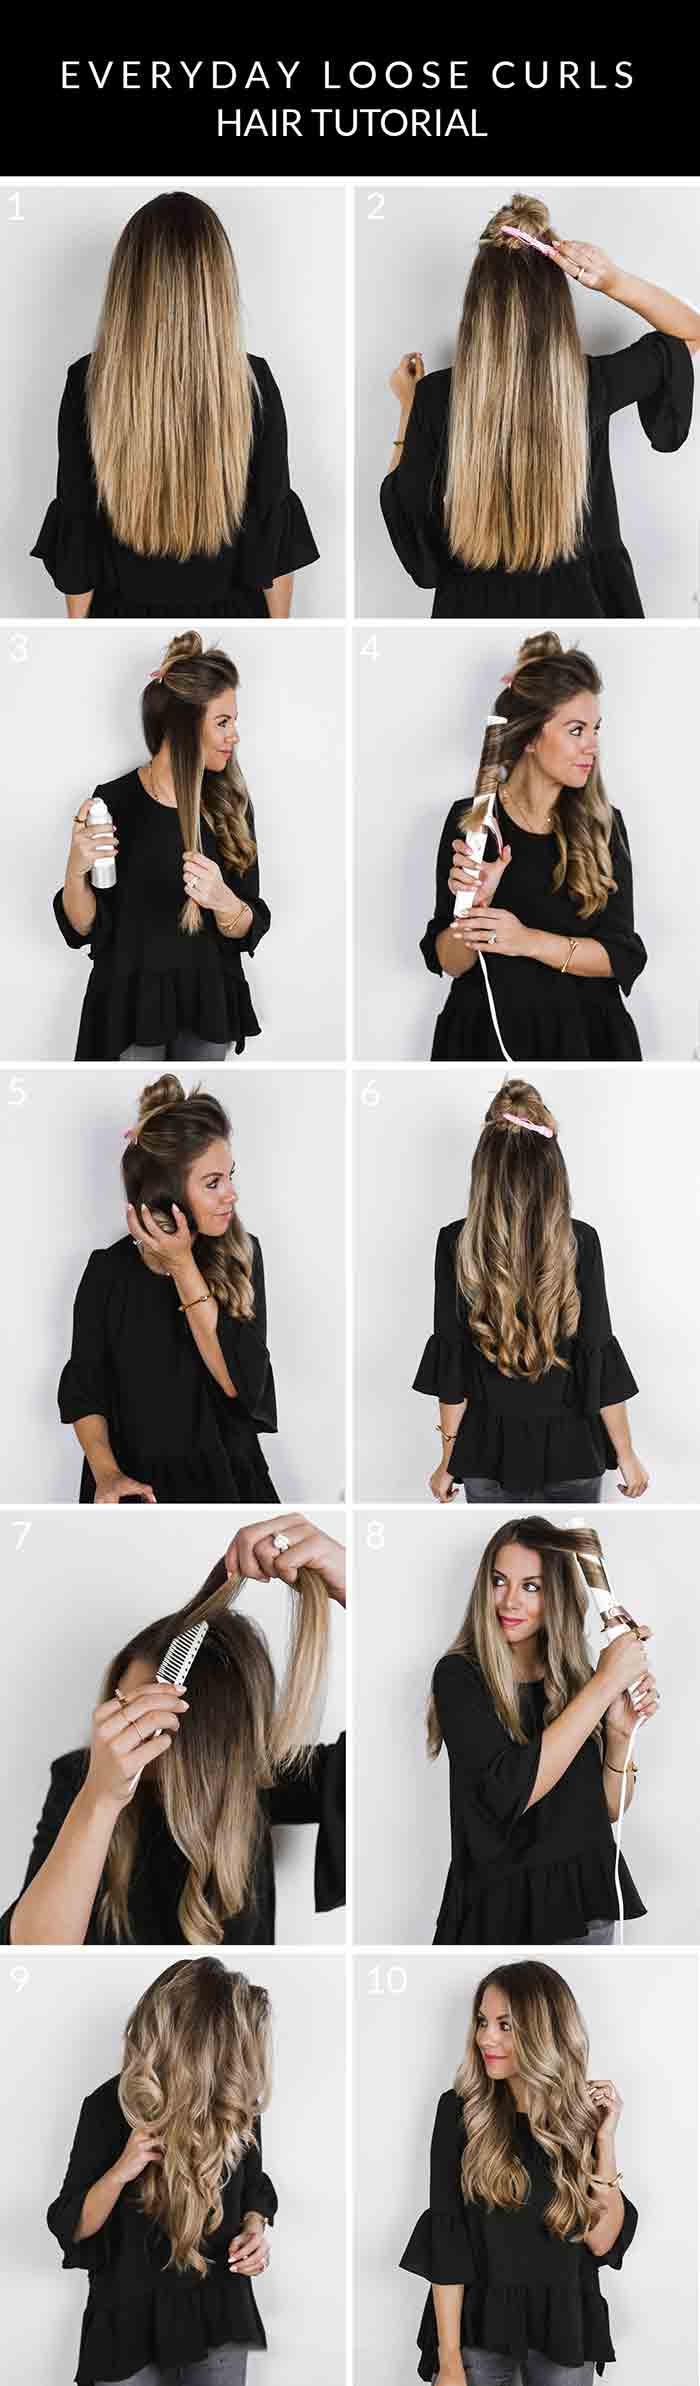 Hair curls tutorial for Christmas